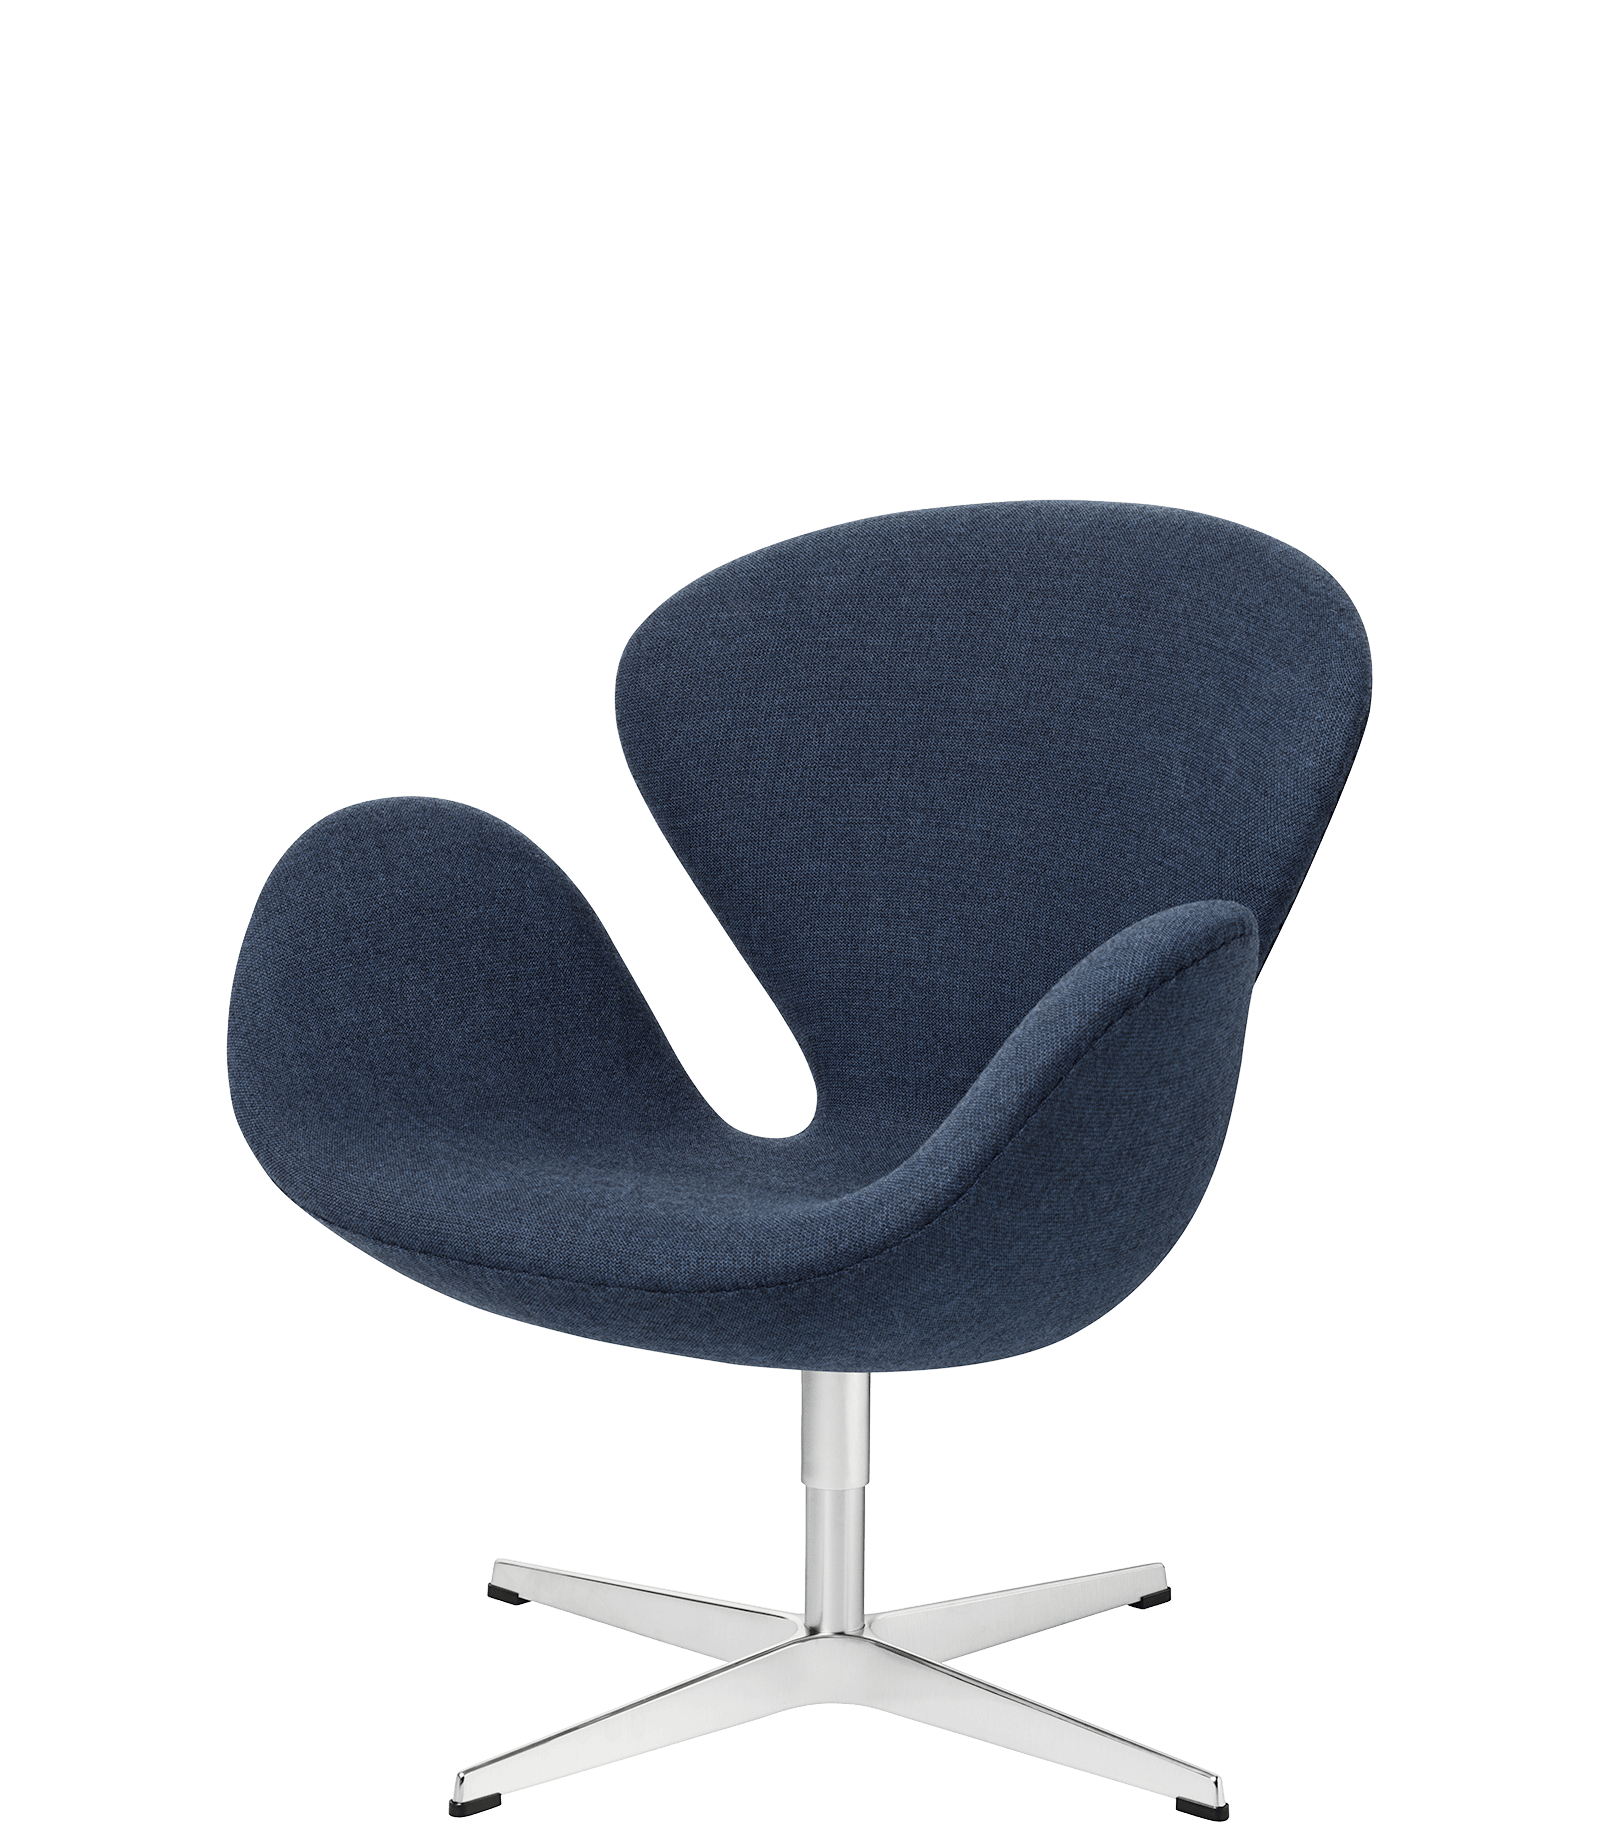 Armchair drawing lounge chair. The swan easy fabric